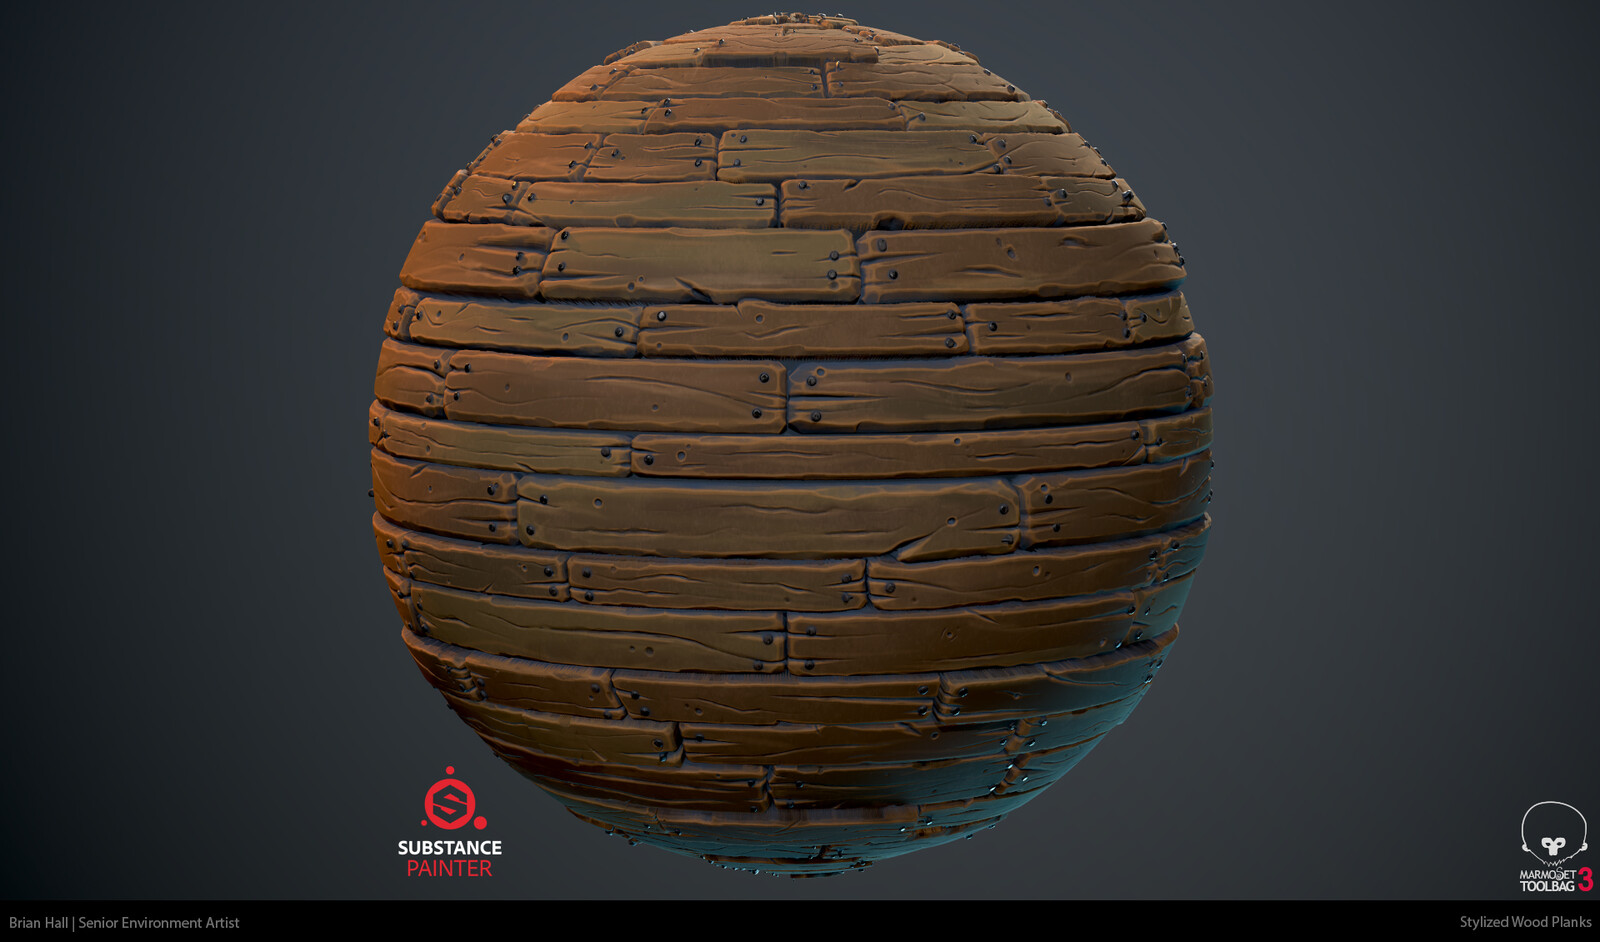 Stylized Wood Planks